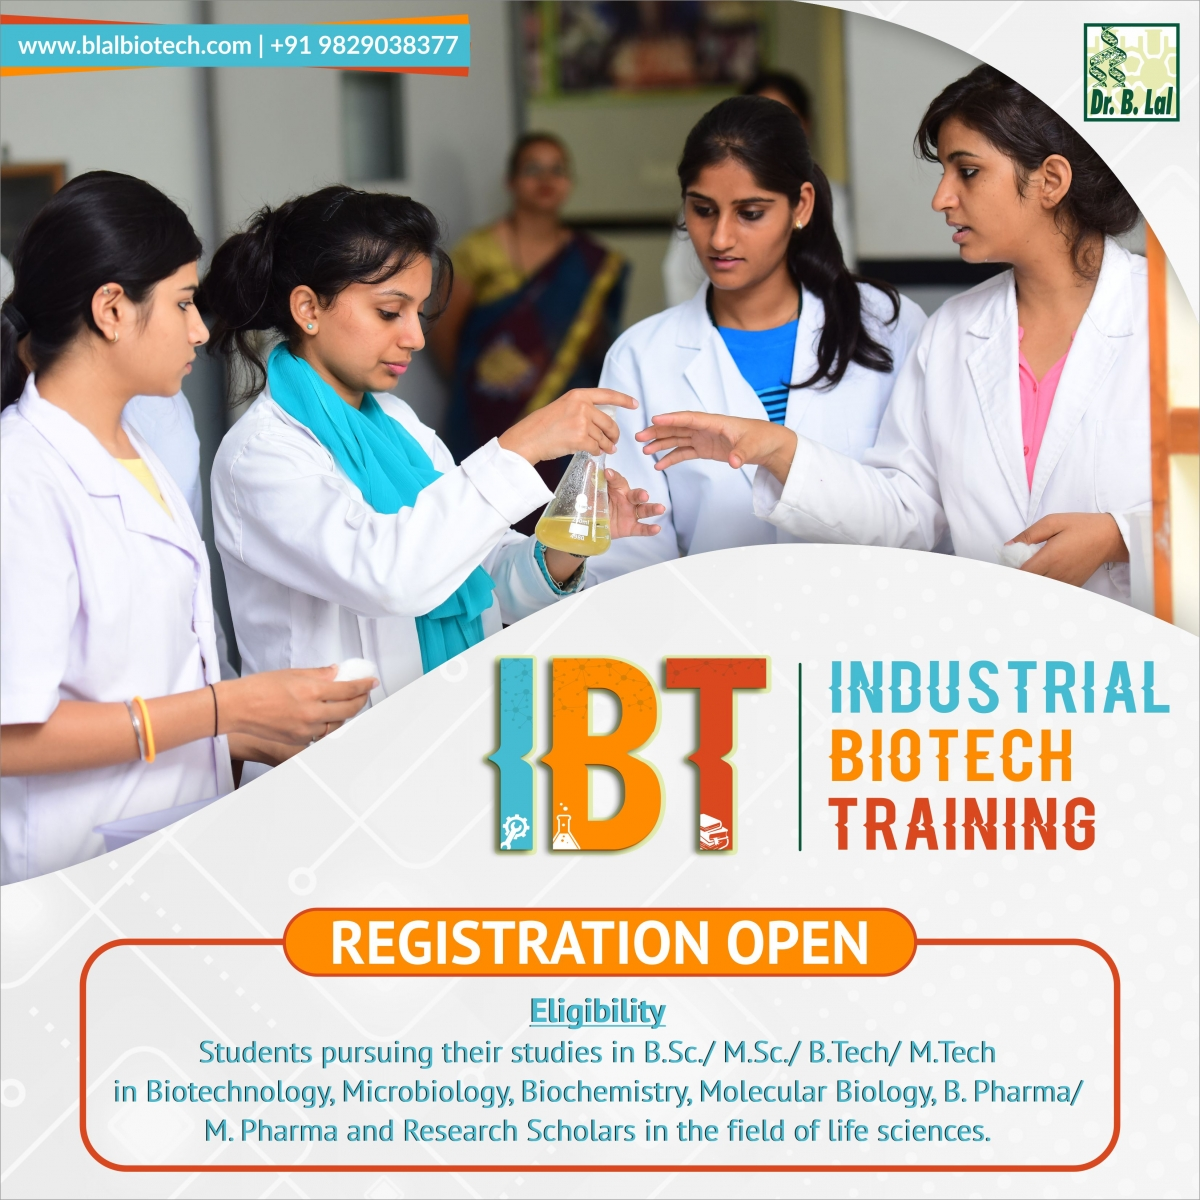 Industrial Biotech Training Program 2019 | #BIBTJaipur